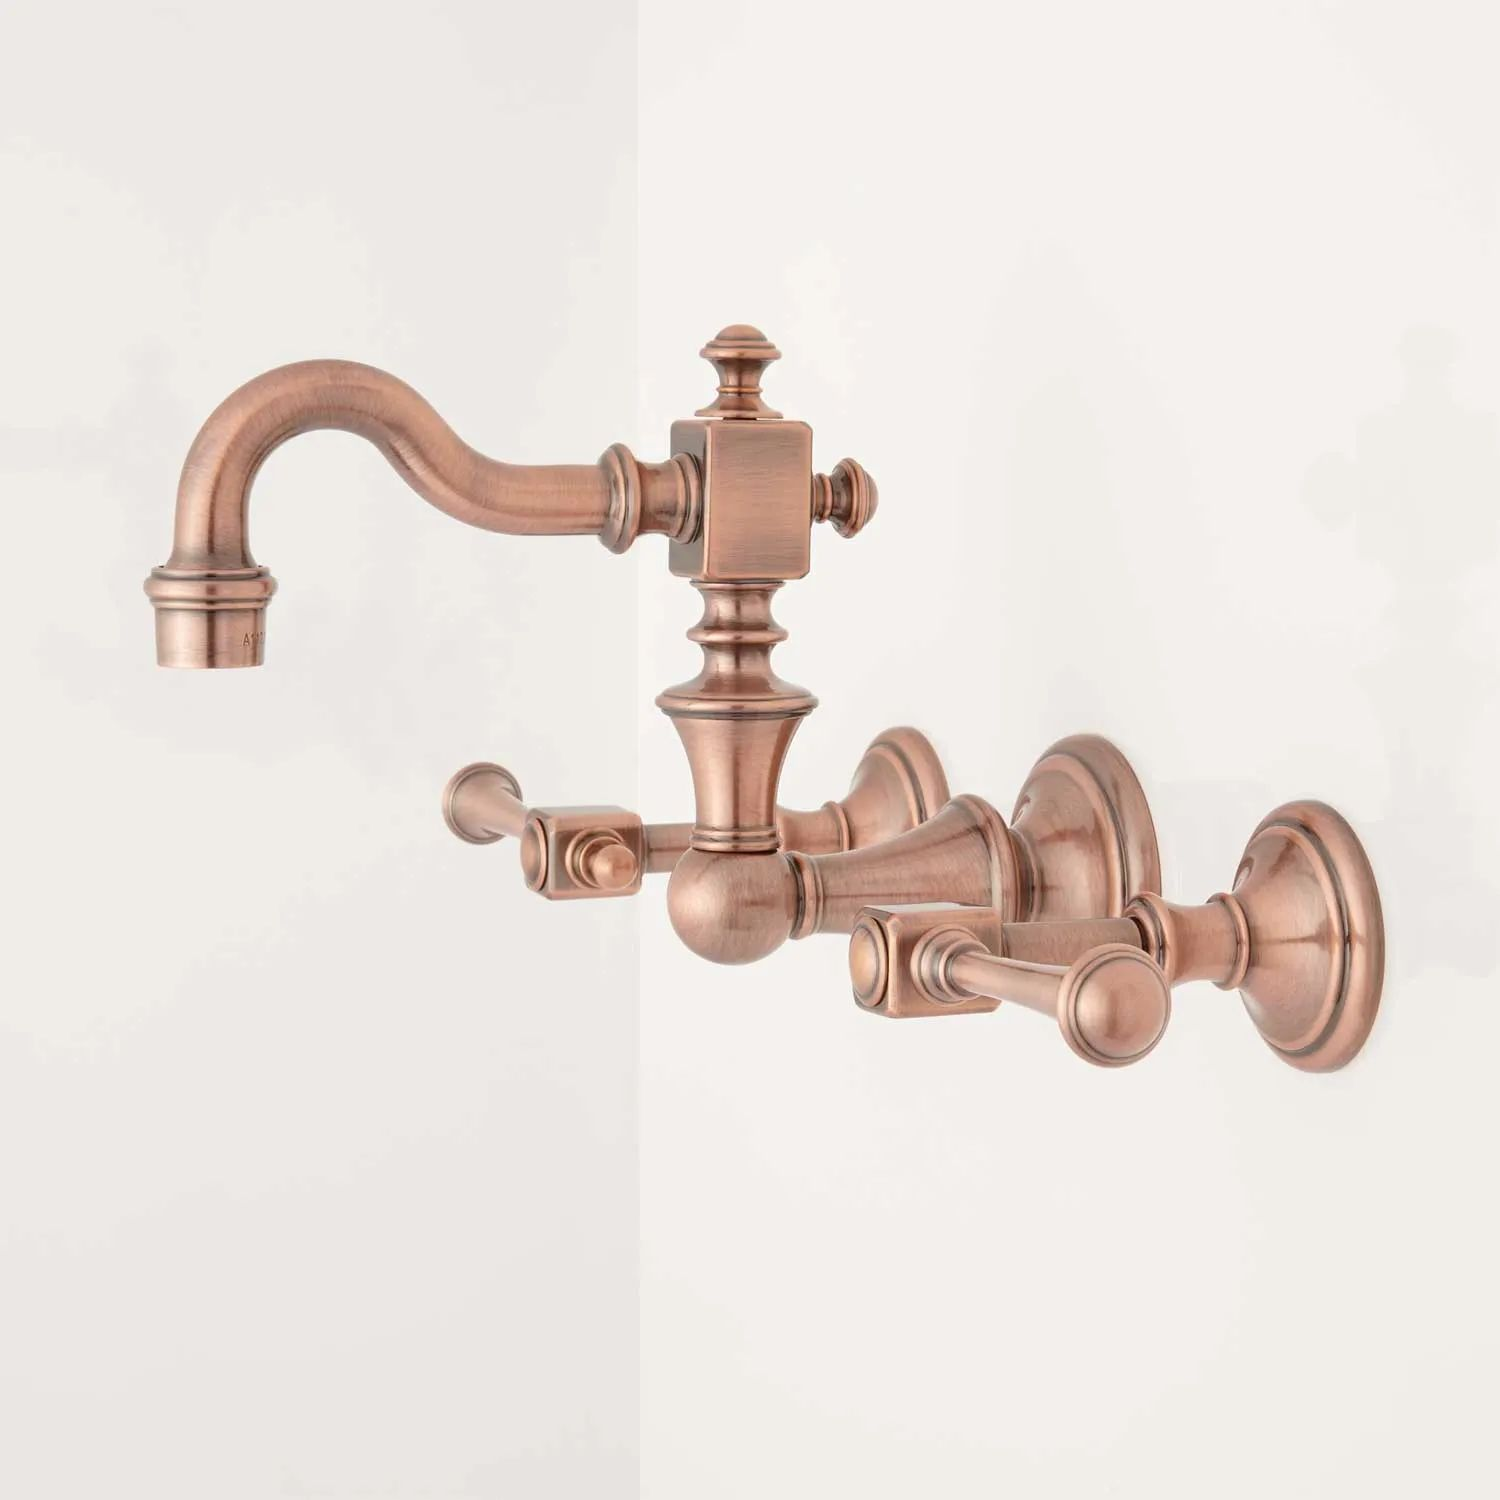 Signature hardware vintage wall mount bathroom faucet with